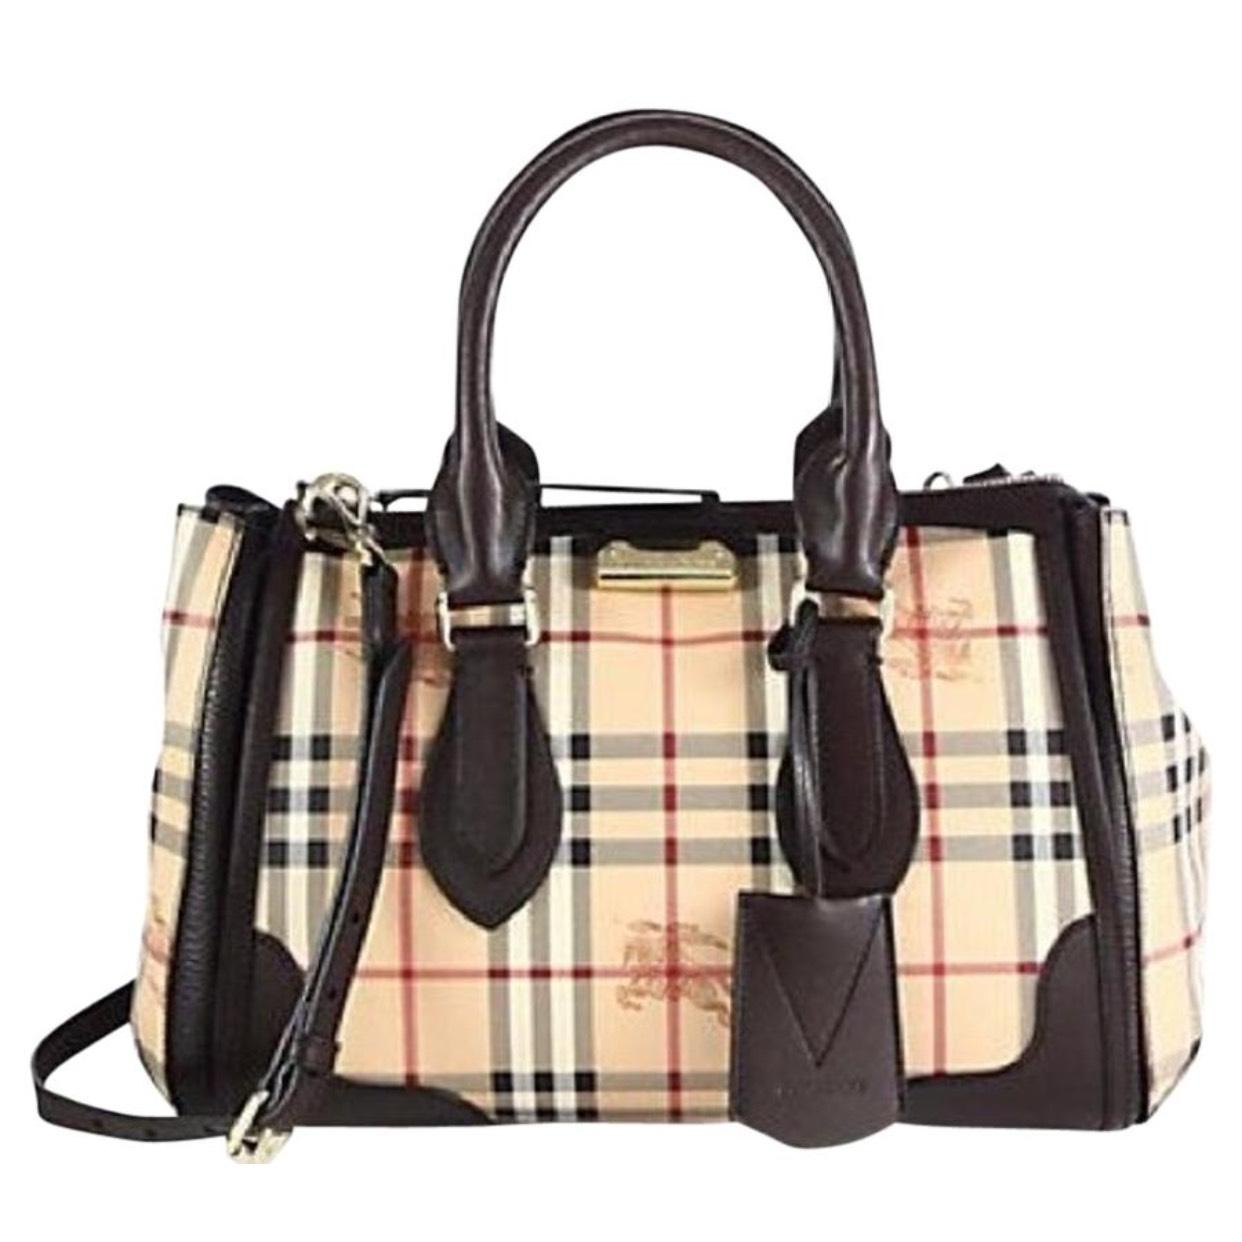 4e836dc6e4b Buy burberry satchel sale  Free shipping for worldwide!OFF54% The ...